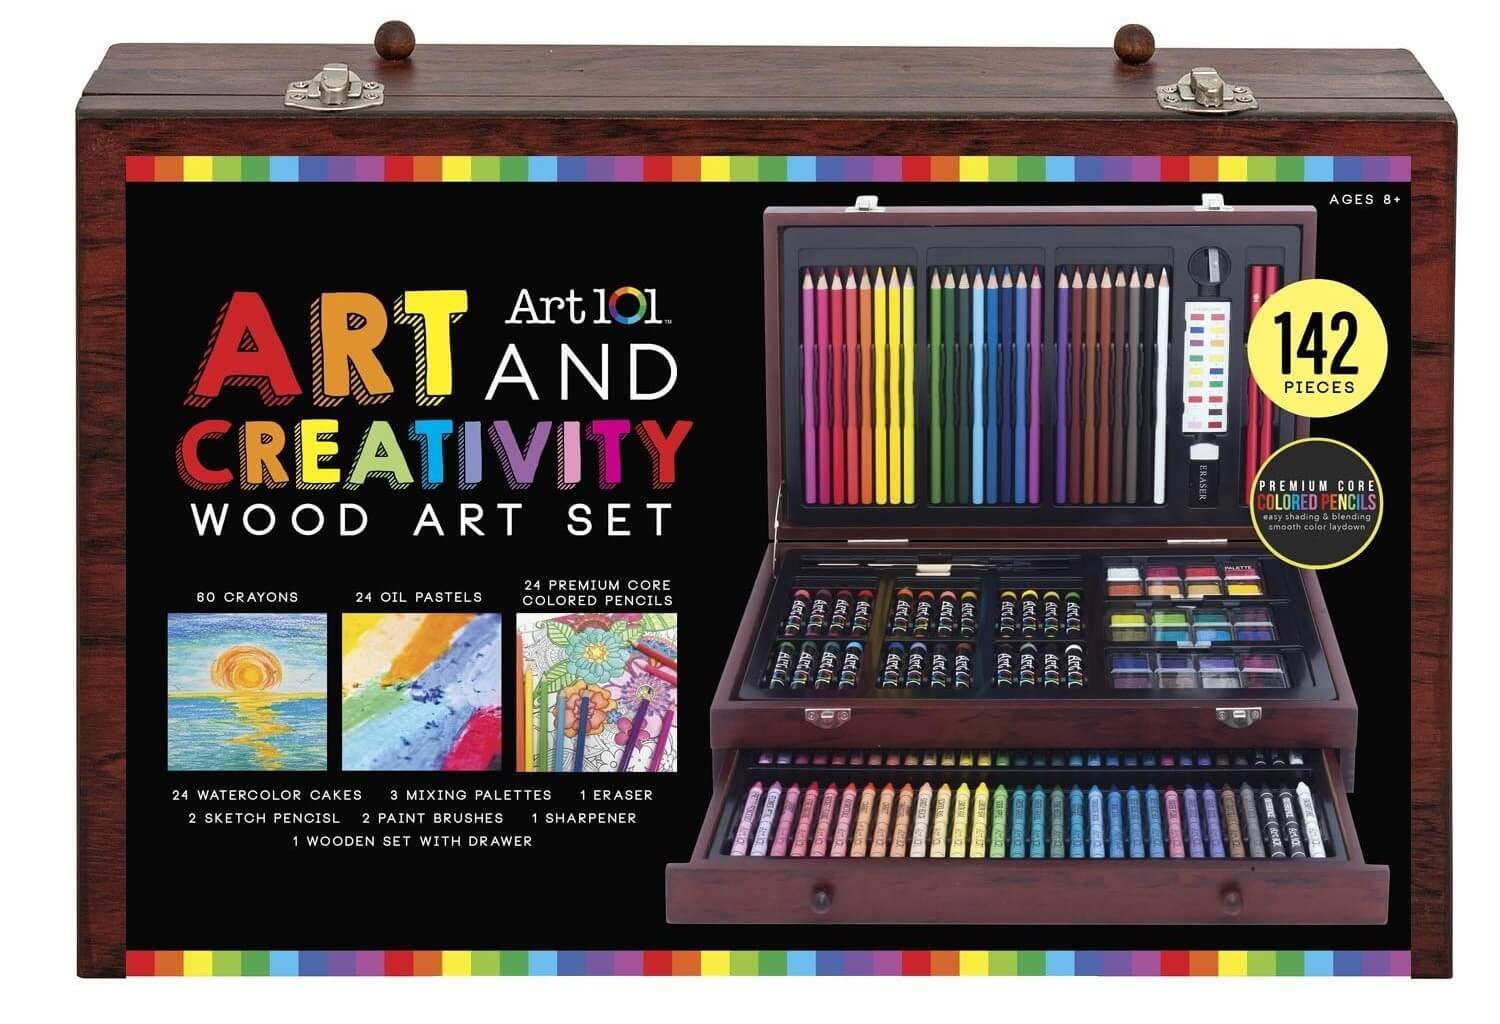 Useful educational gift for Christmas Art 101 Art and Creativity Wood Art Set. 60 Crayons, 24 Oil Pastels, 24 Premium Core Colored Pencils, 24 Watercolor Cakes, 3 Mixed Palettes, 1 Eraser, 2 Sketch Pencils, 2 Paint Brushes, 1 Sharpener, 1 Wooden Set With Drawer. 142 Pieces Wood Art Set. Premium Core Colored Pencils. Easy Shading and Blending Smooth Color Laydown.